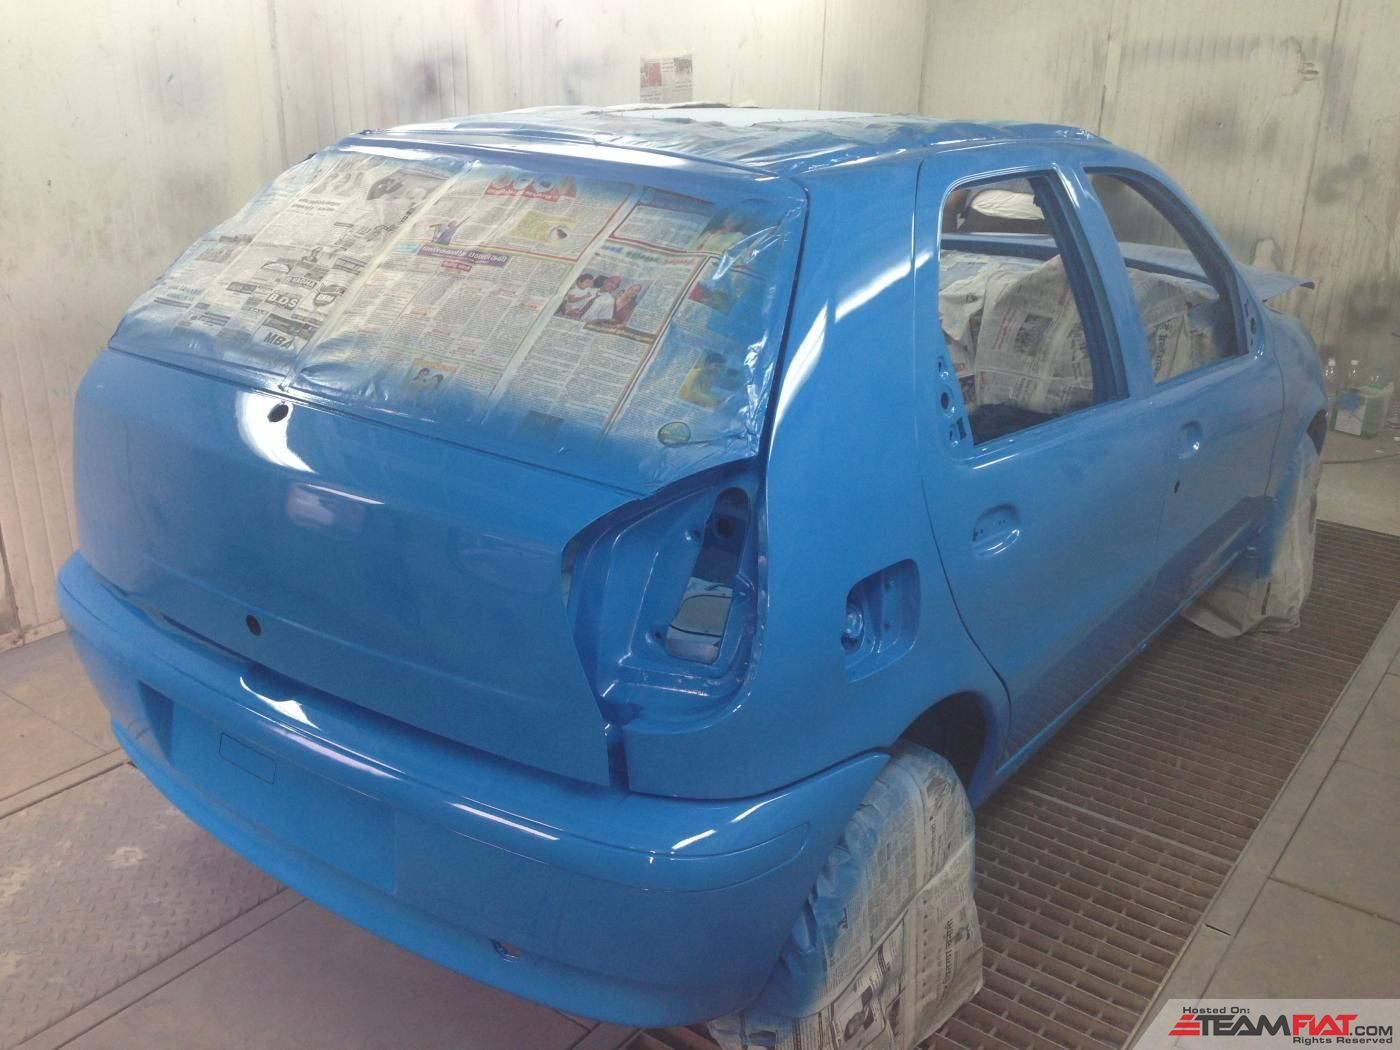 Car in Paint Booth - Rear.jpg